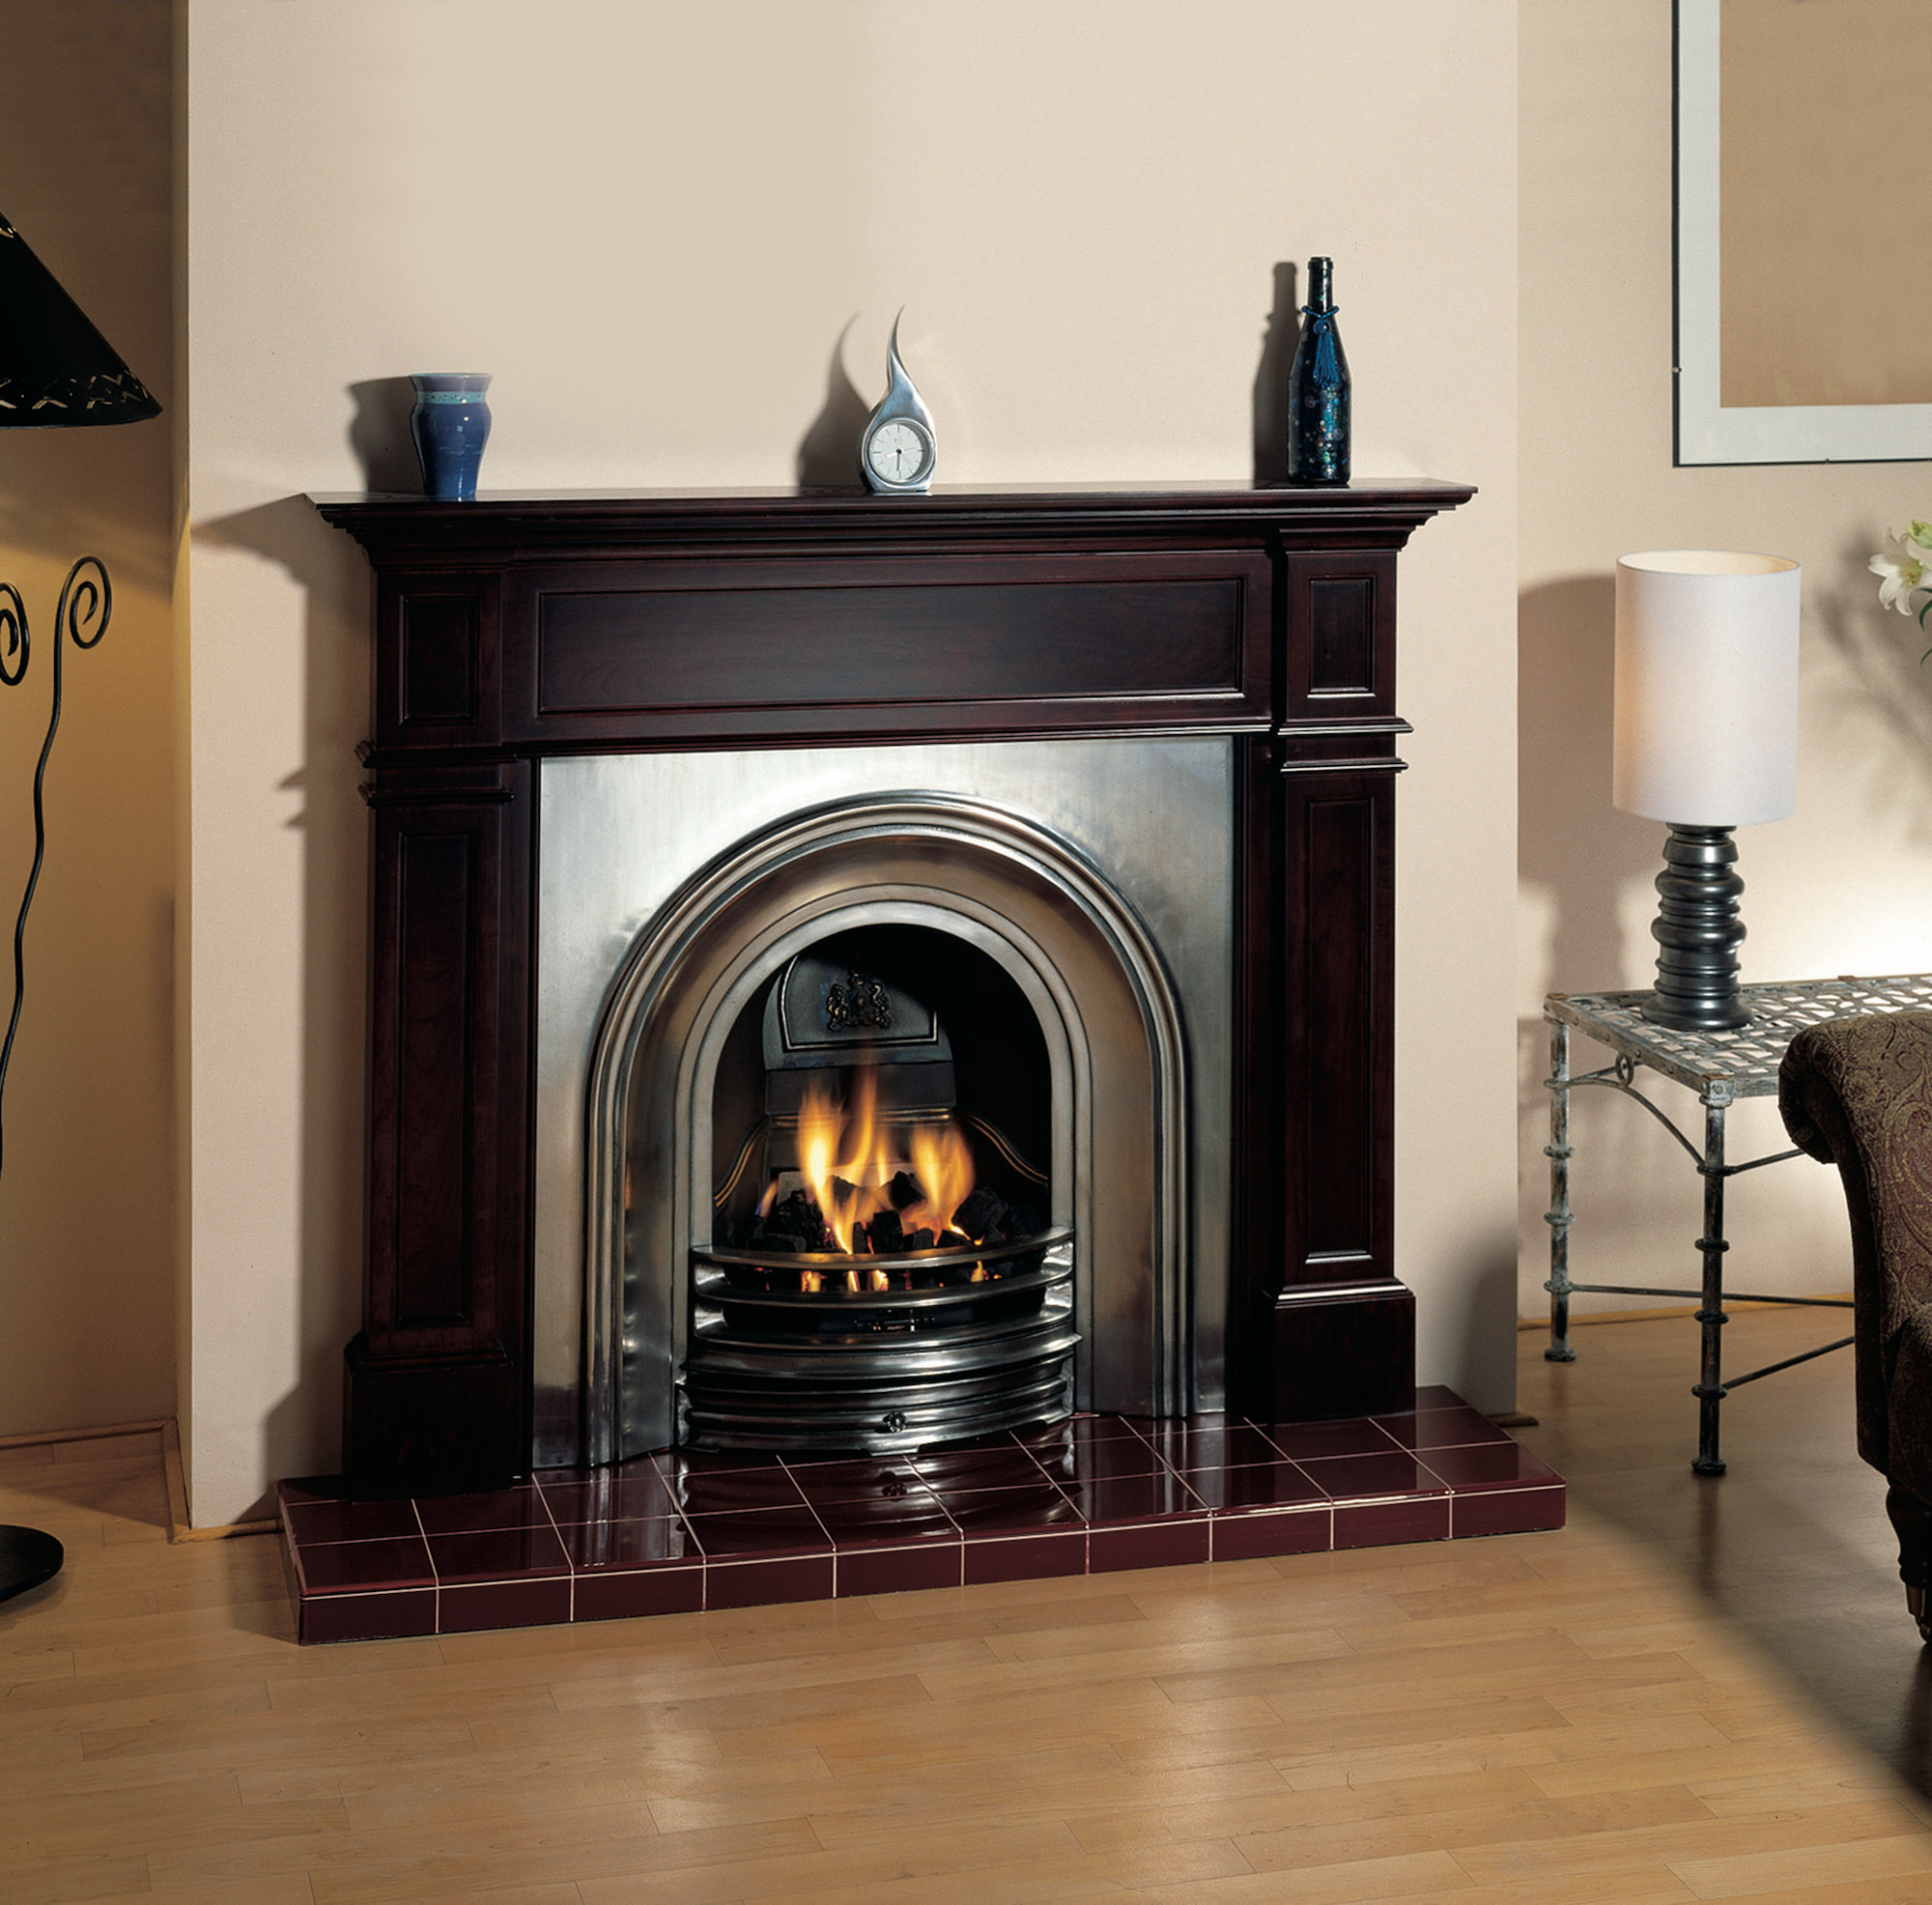 Stovax Classical Arched Fireplace Insert – The Fireplace ...